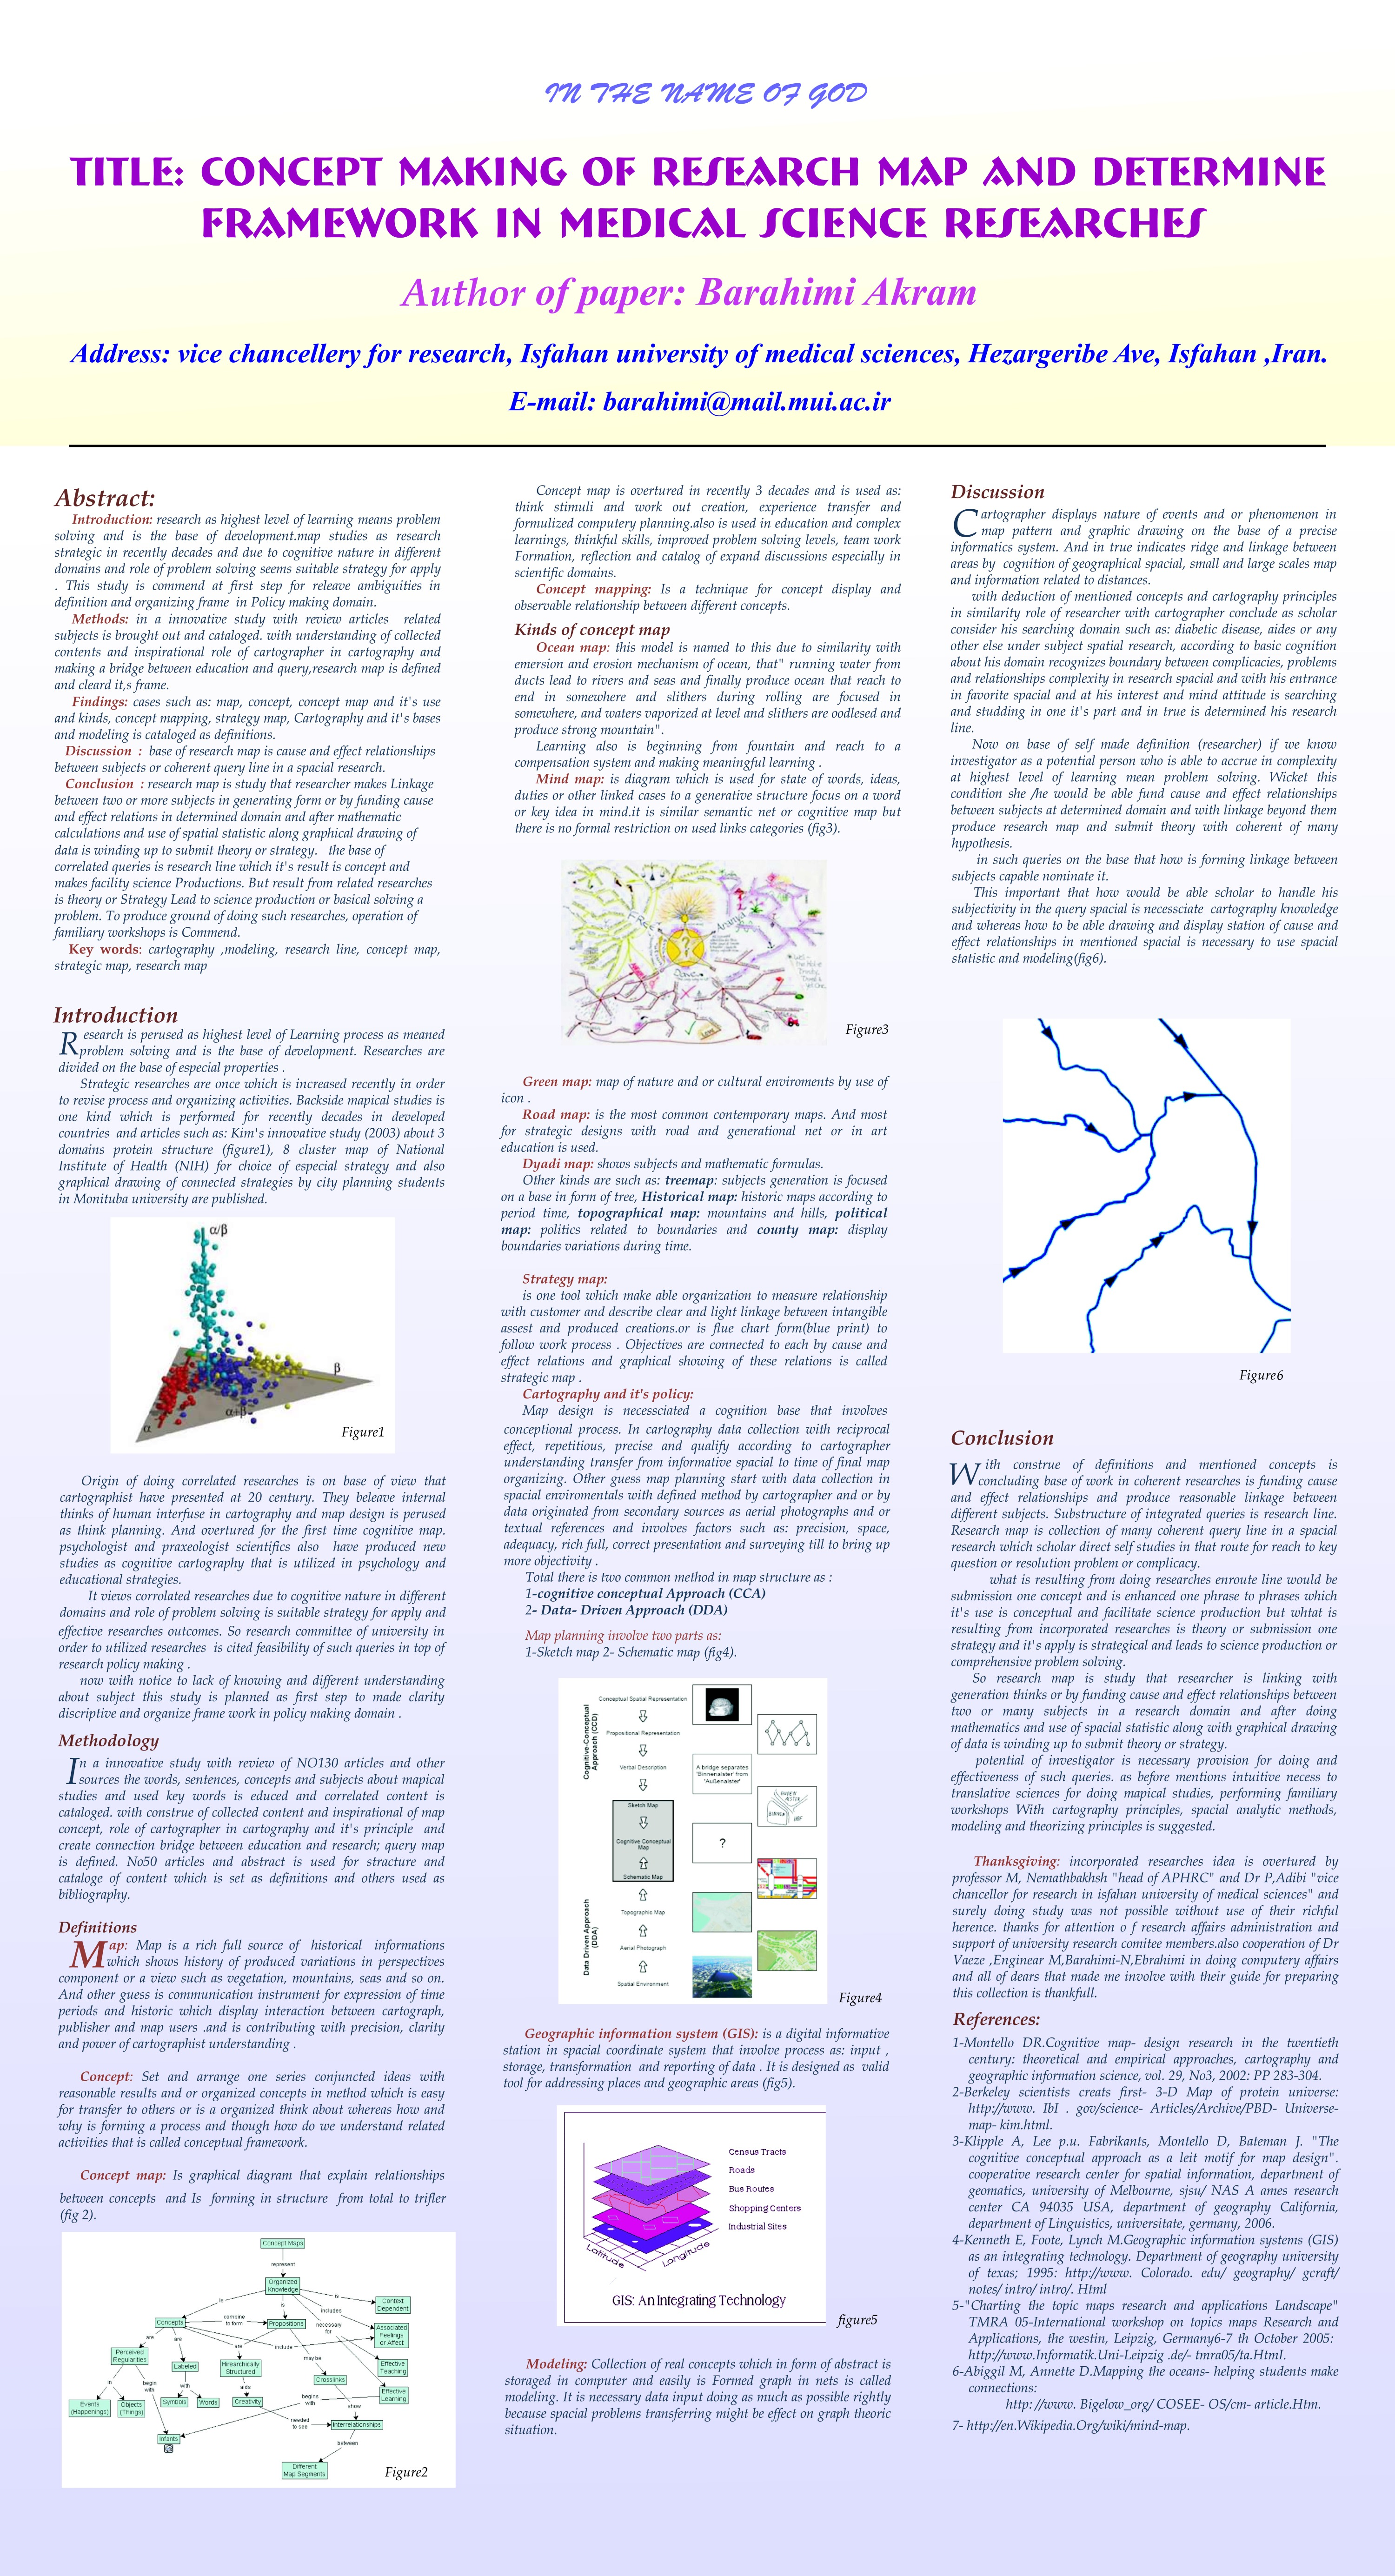 concept making of research map and determine framework in medical science researches